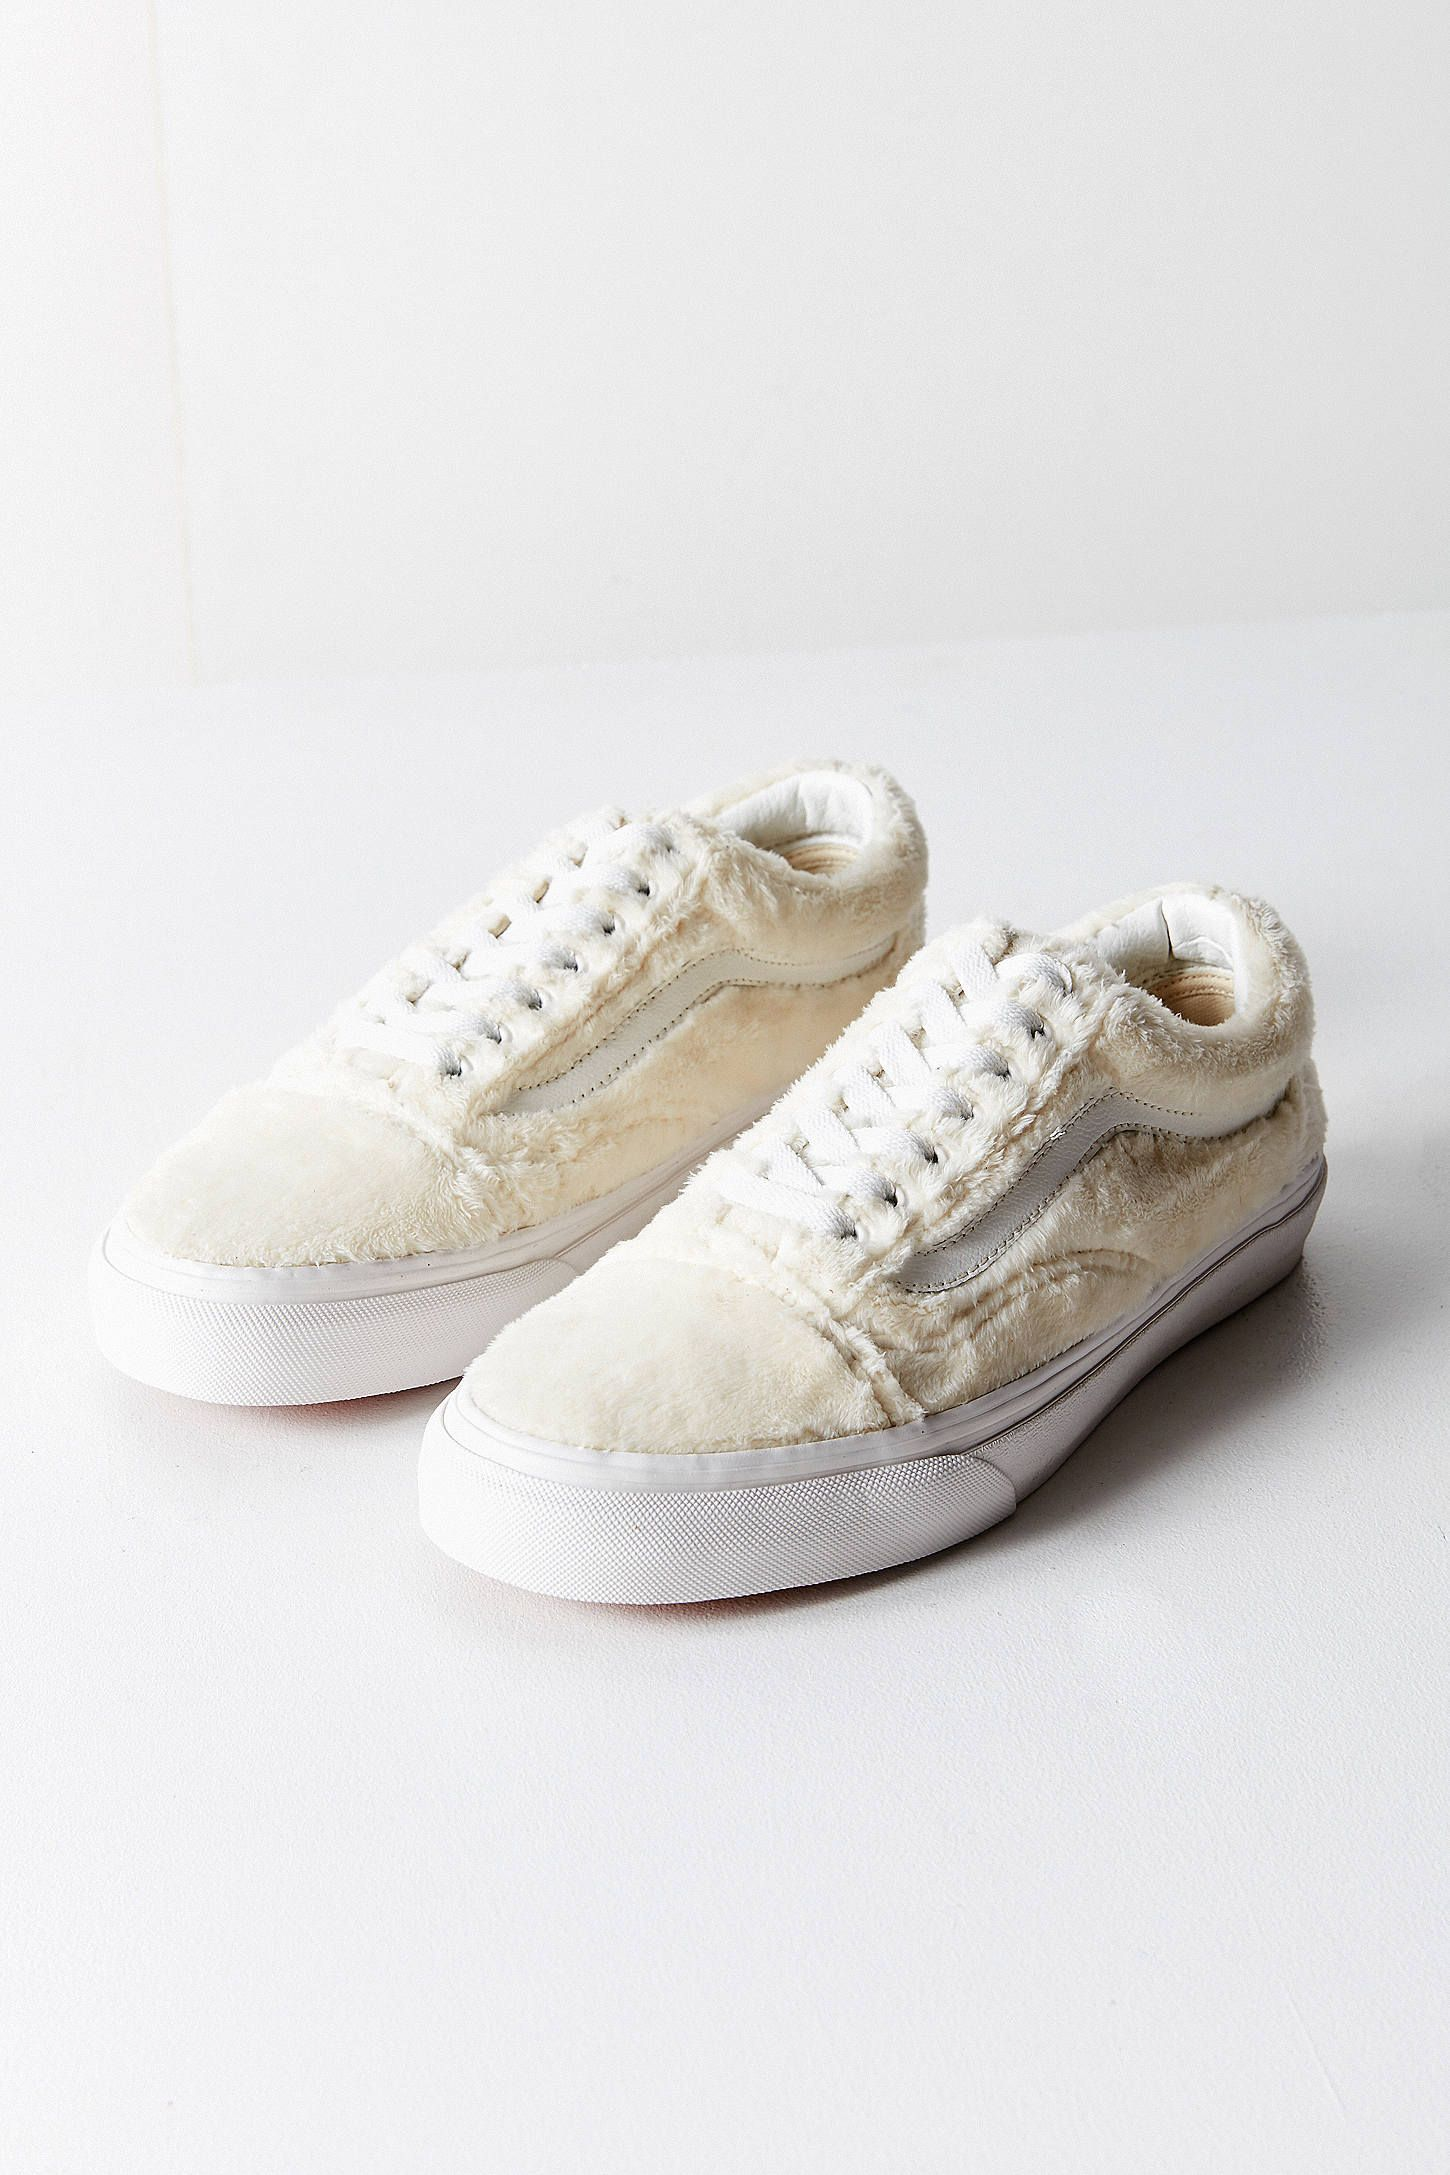 0567ed9c761 Shop Vans Faux Sherpa Old Skool Sneaker at Urban Outfitters today. We carry  all the latest styles